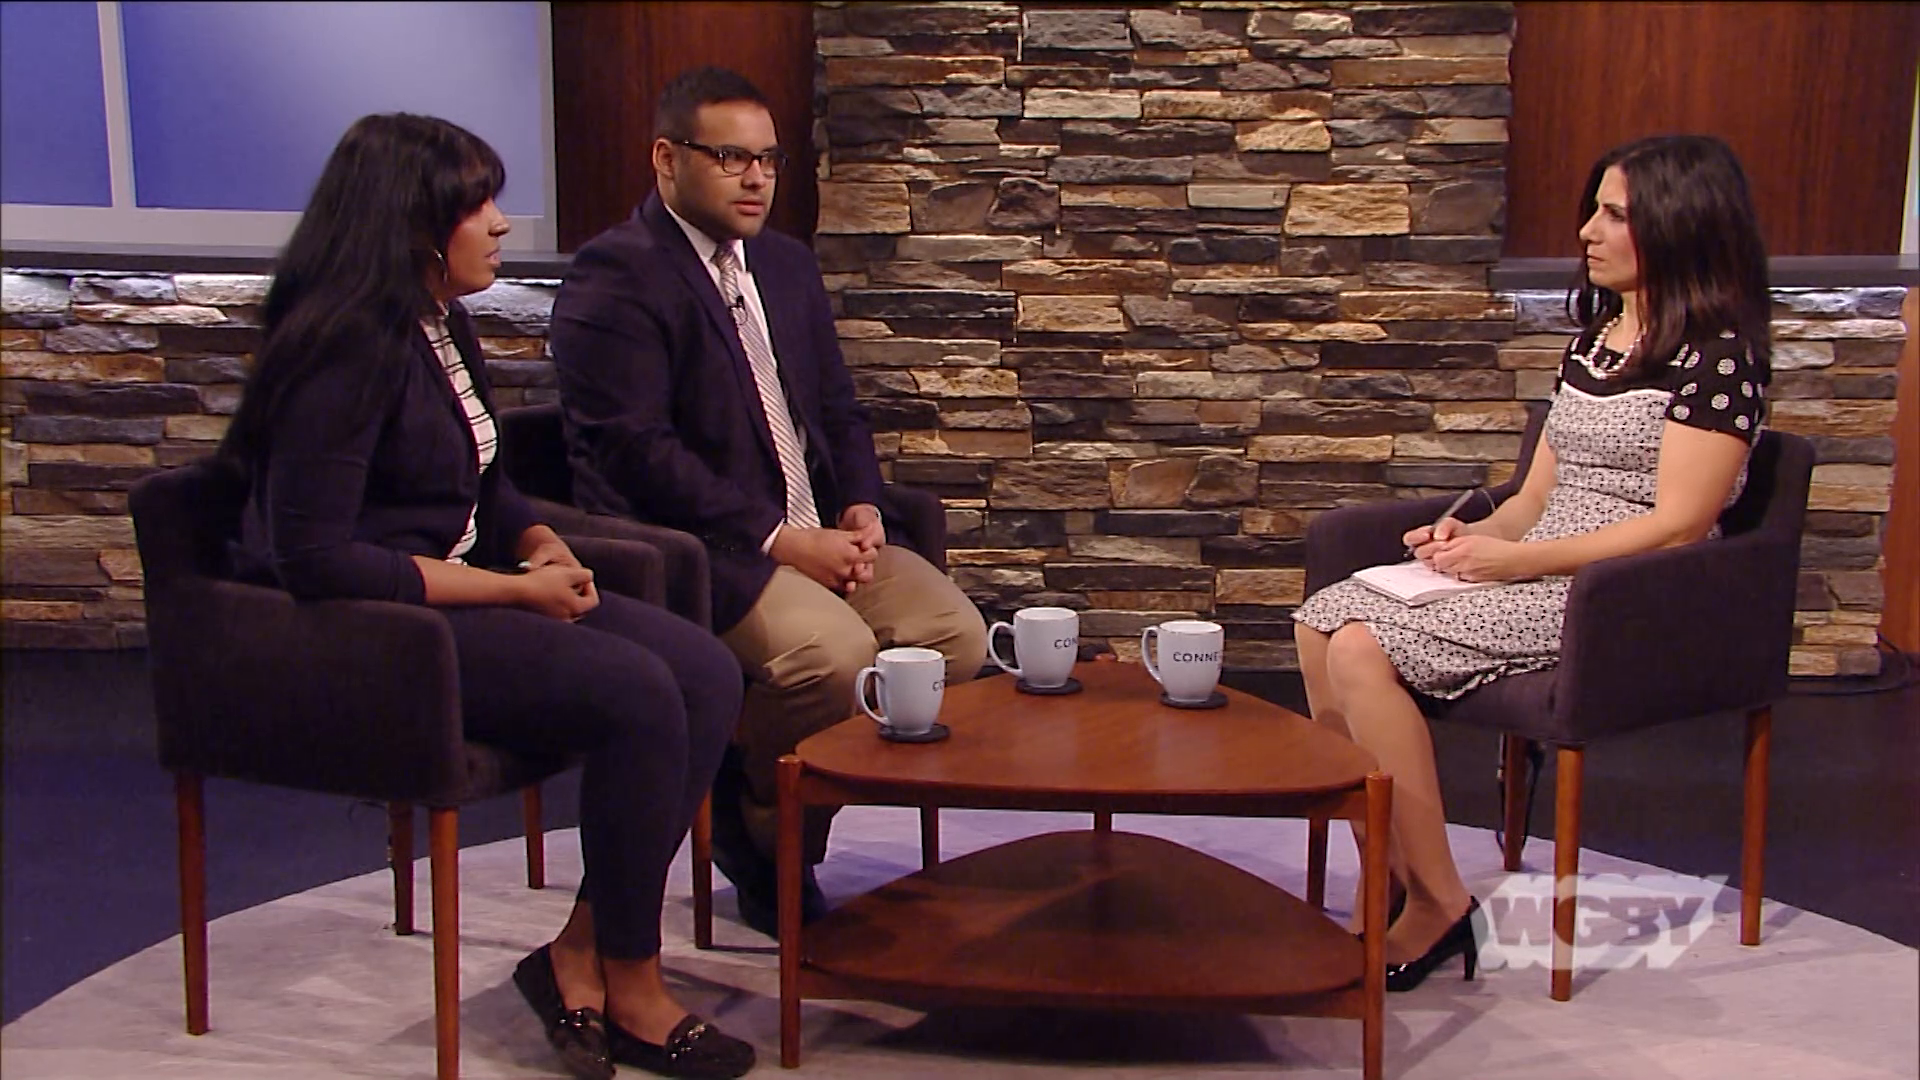 Western Mass News' James Villalobos & Andrea Rivera discuss Achim Bailey, a Springfield man found dead this month after being reported missing in January.